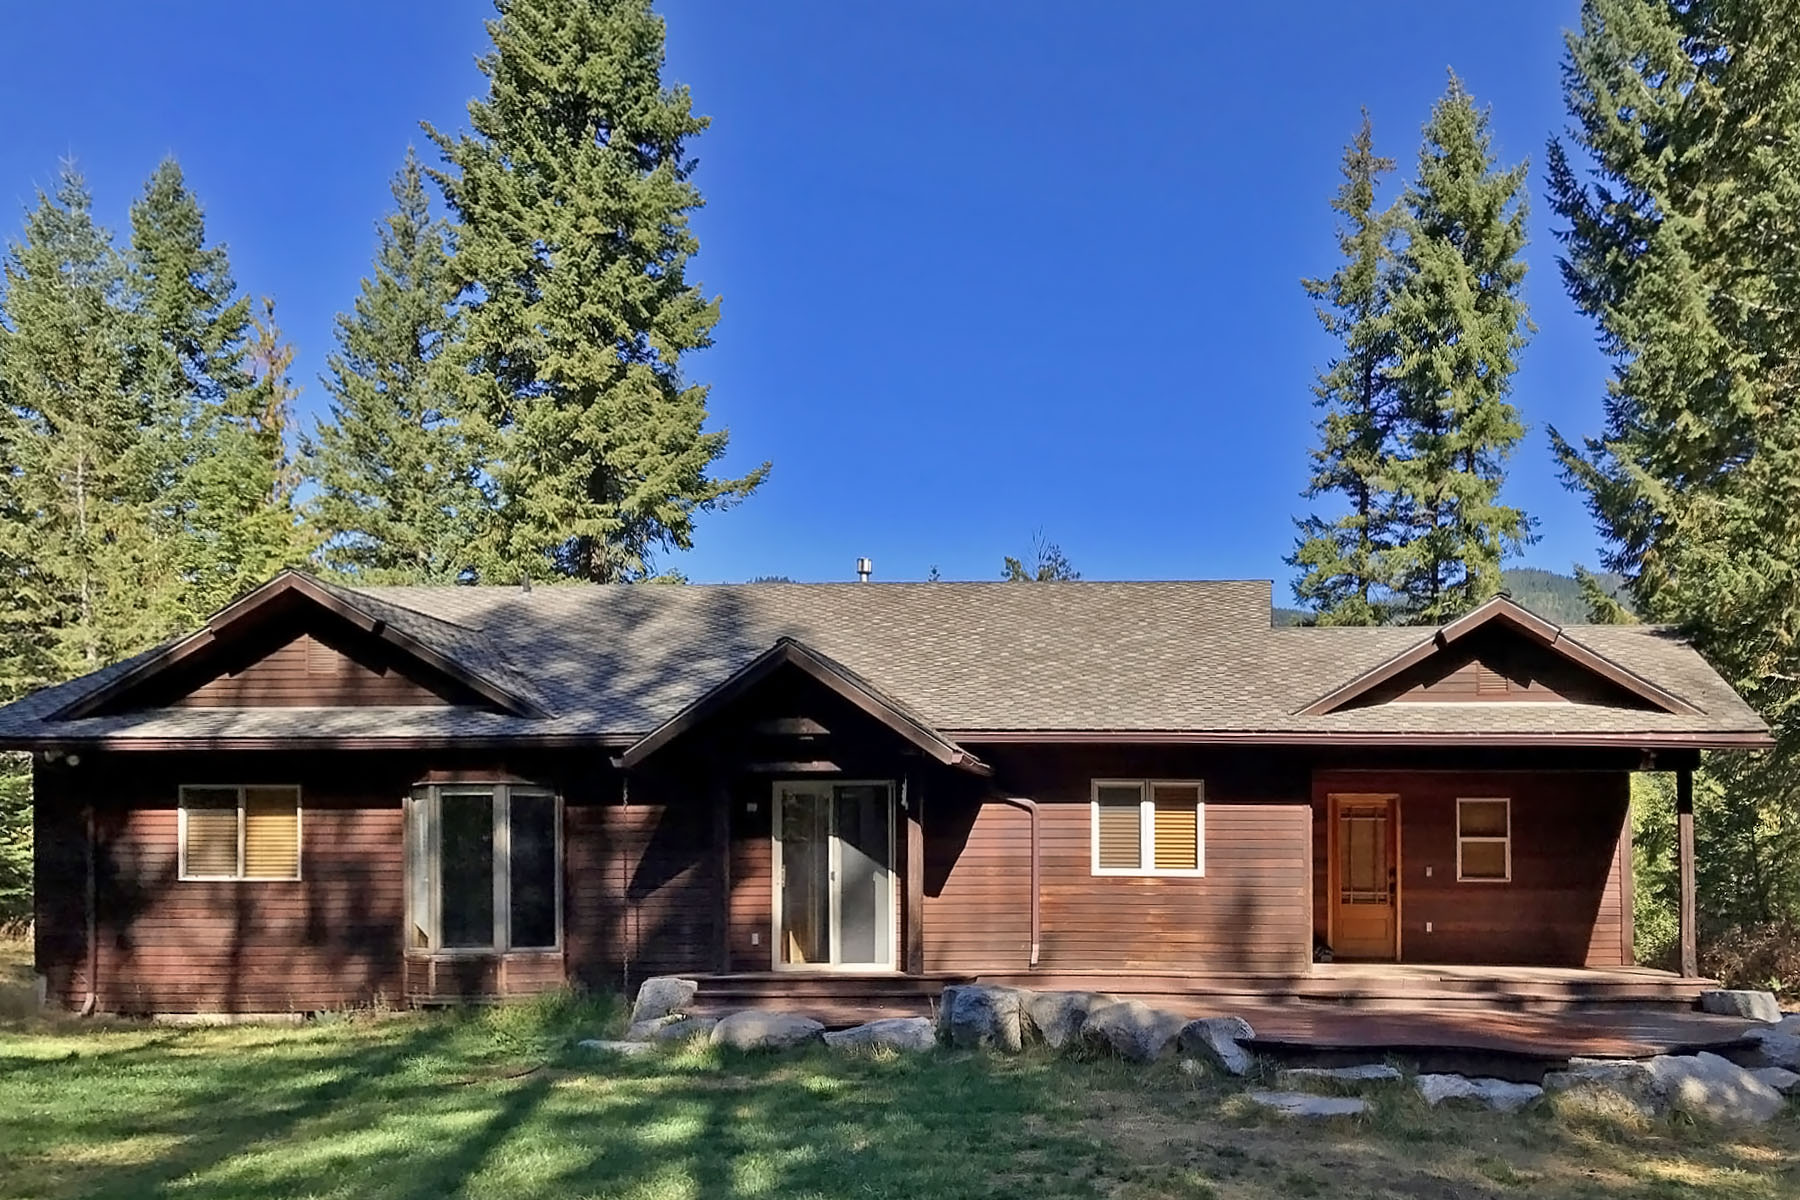 Single Family Home for Sale at Custom built home on Sweetwater Drive 379 Sweetwater Dr Sandpoint, Idaho 83864 United States